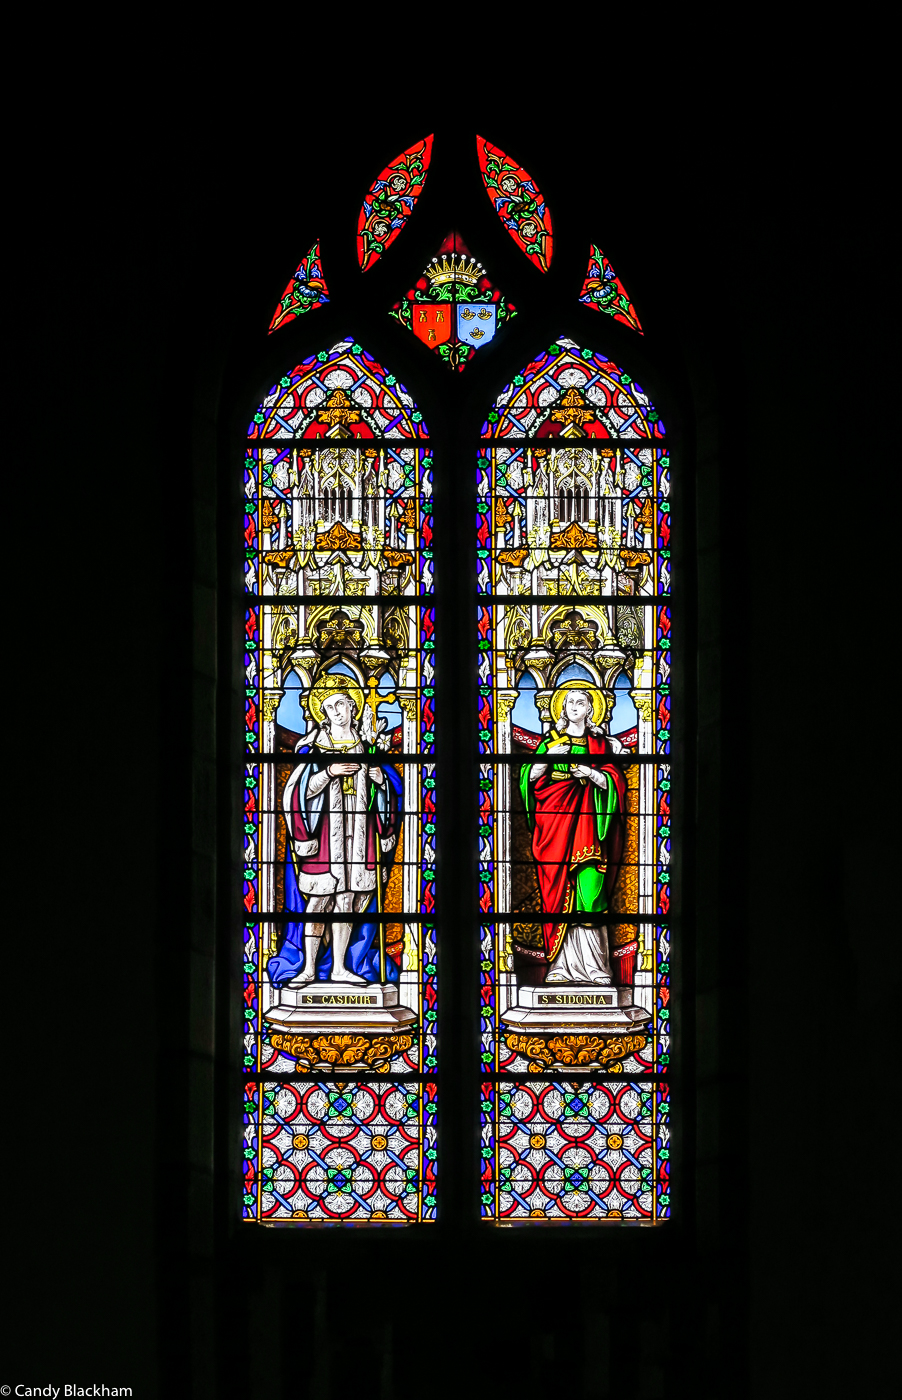 Stained glass in the Church of St Peter, Plouvorn